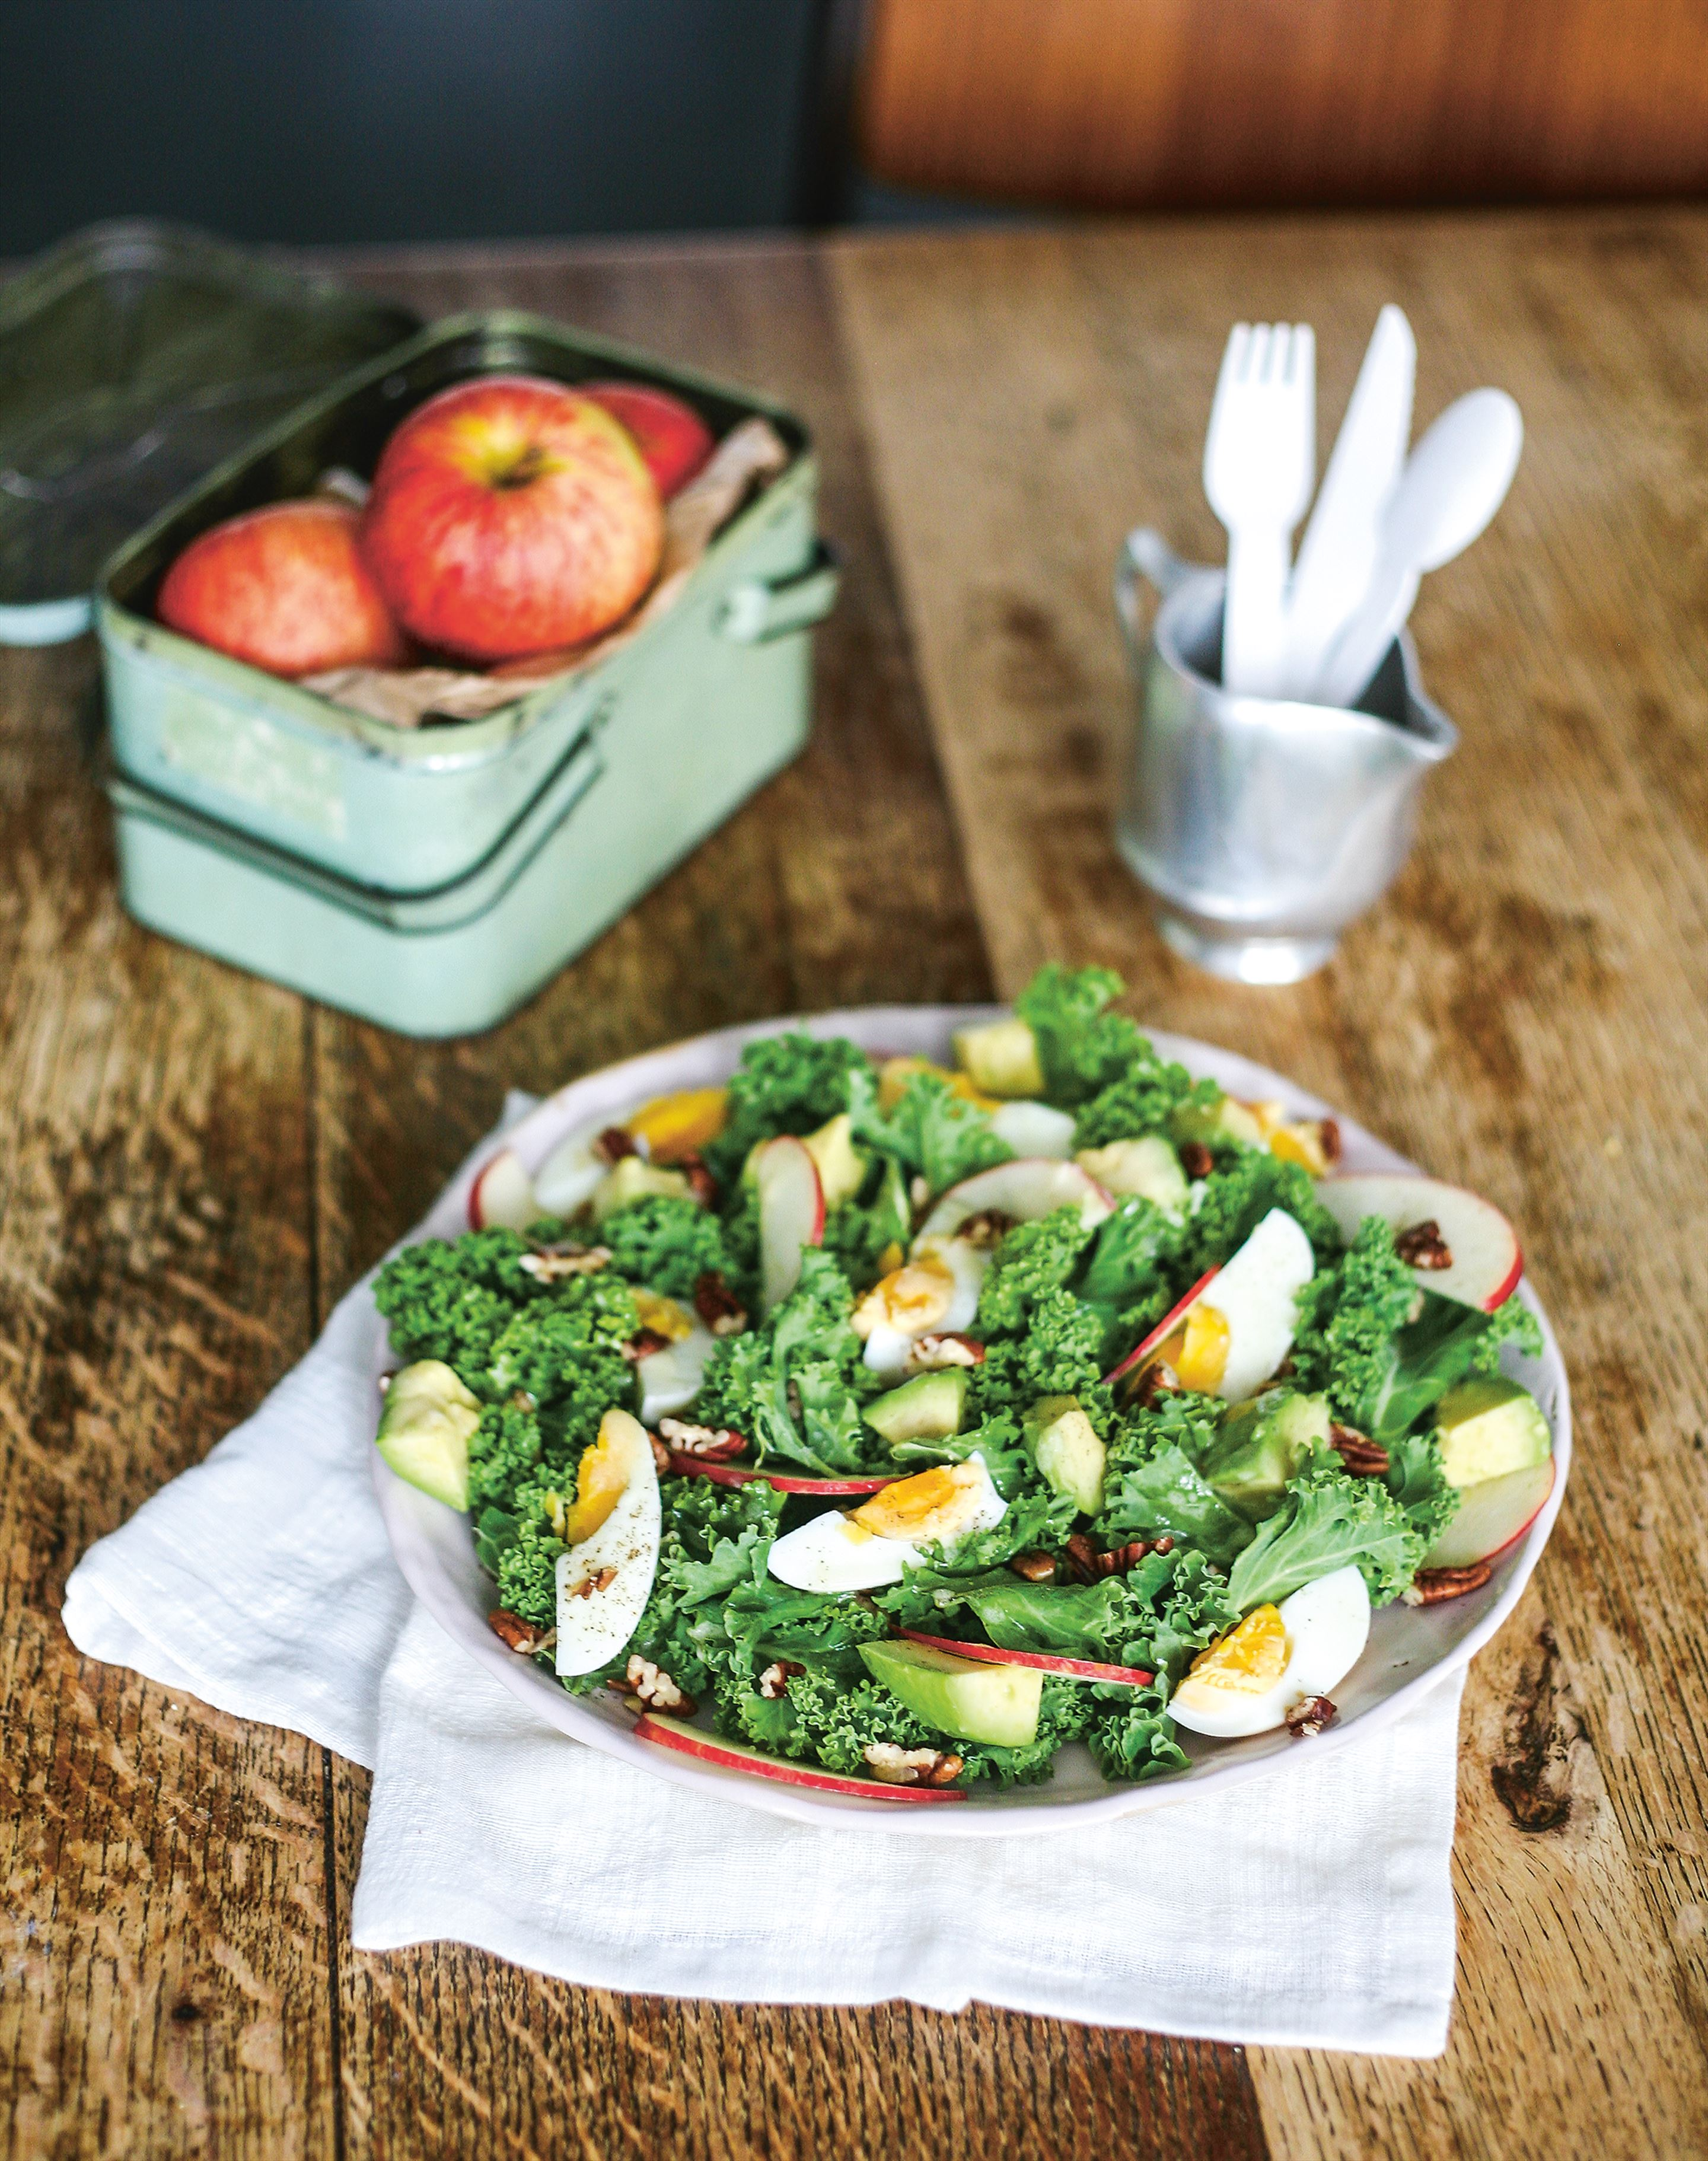 Kale salad with apple, pecans & egg